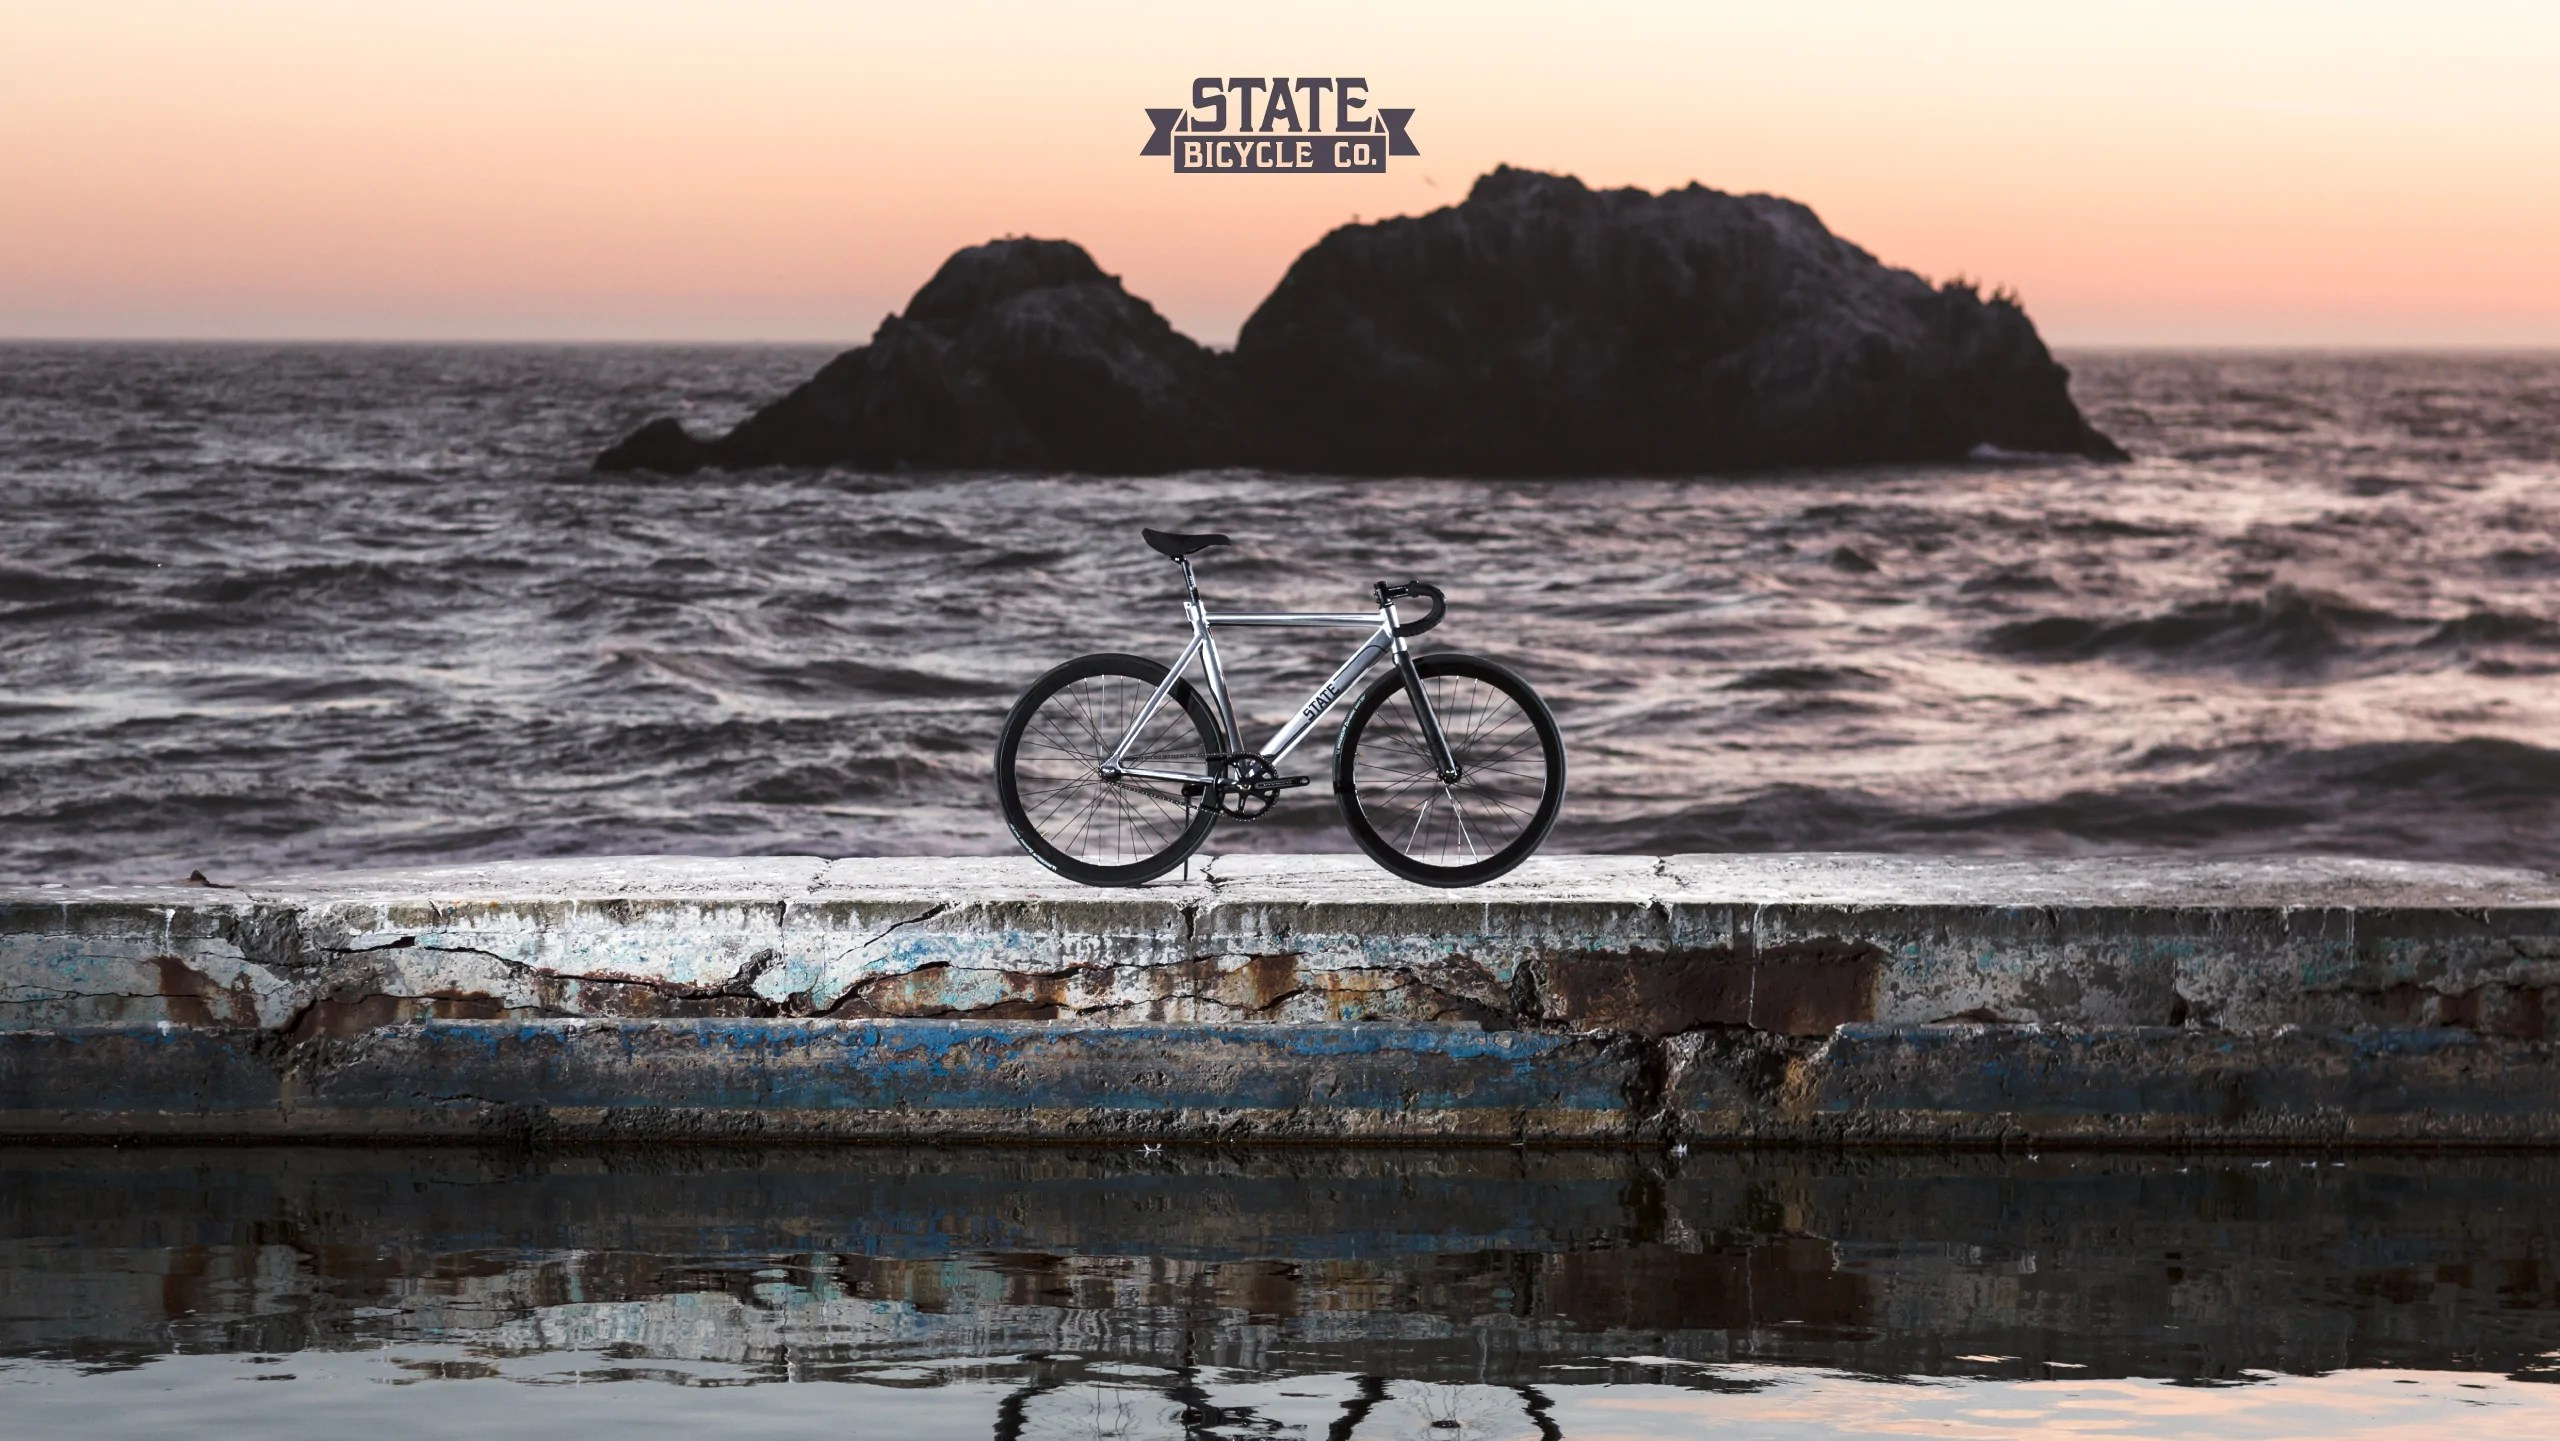 Fixed Gear Wallpaper Iphone Monthly Wallpaper August 2014 State Bicycle Co